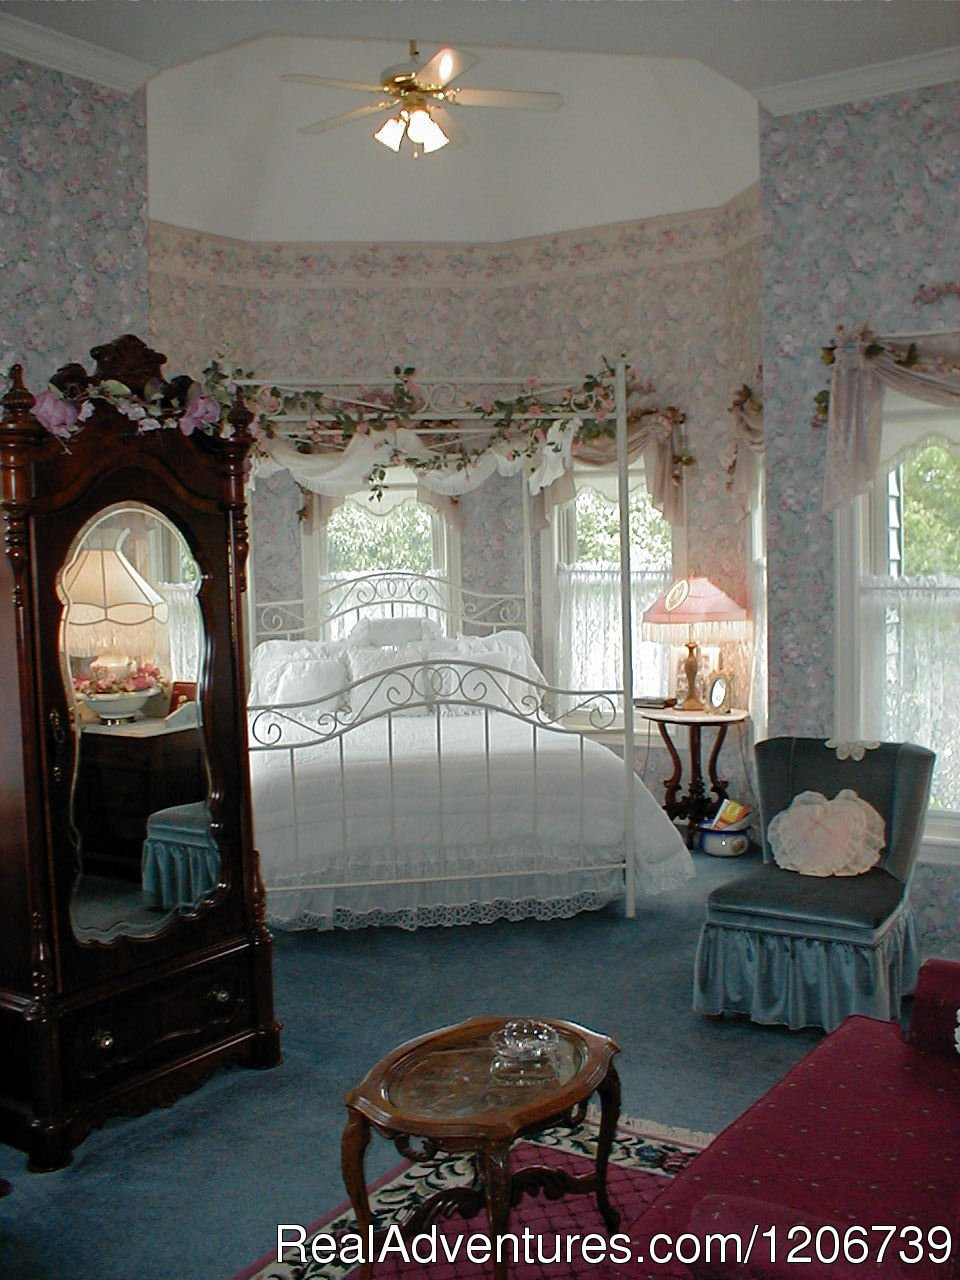 The Rose O'Neil Suite